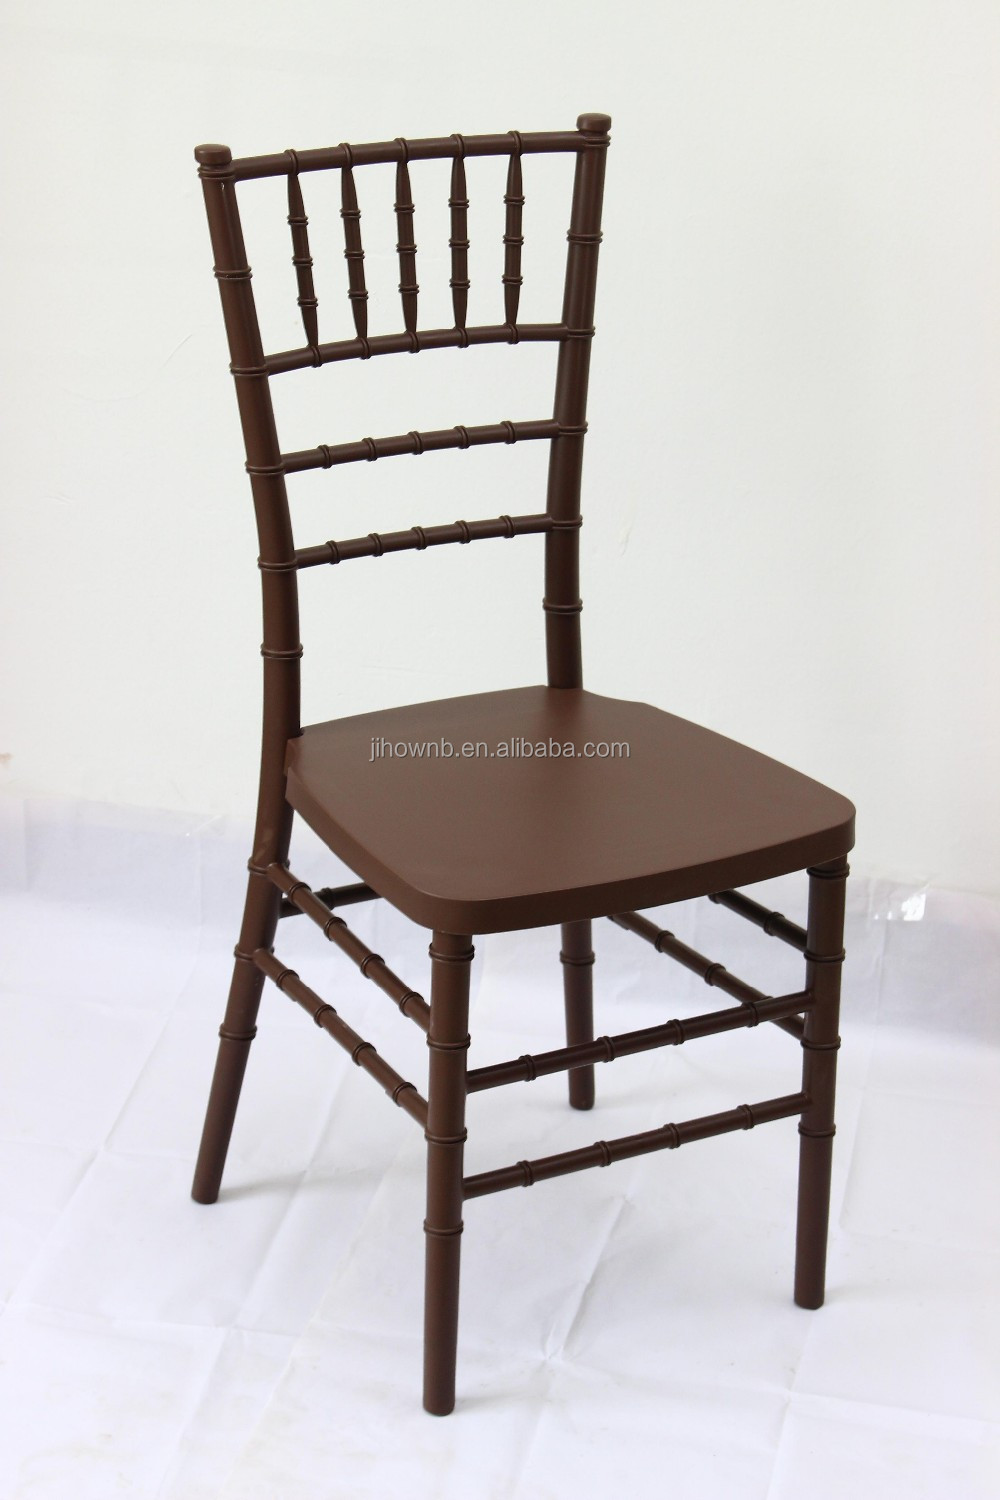 chiavari chairs wholesale bedroom chair cream used bulk in wooden for wedding price - buy chairs,bulk ...